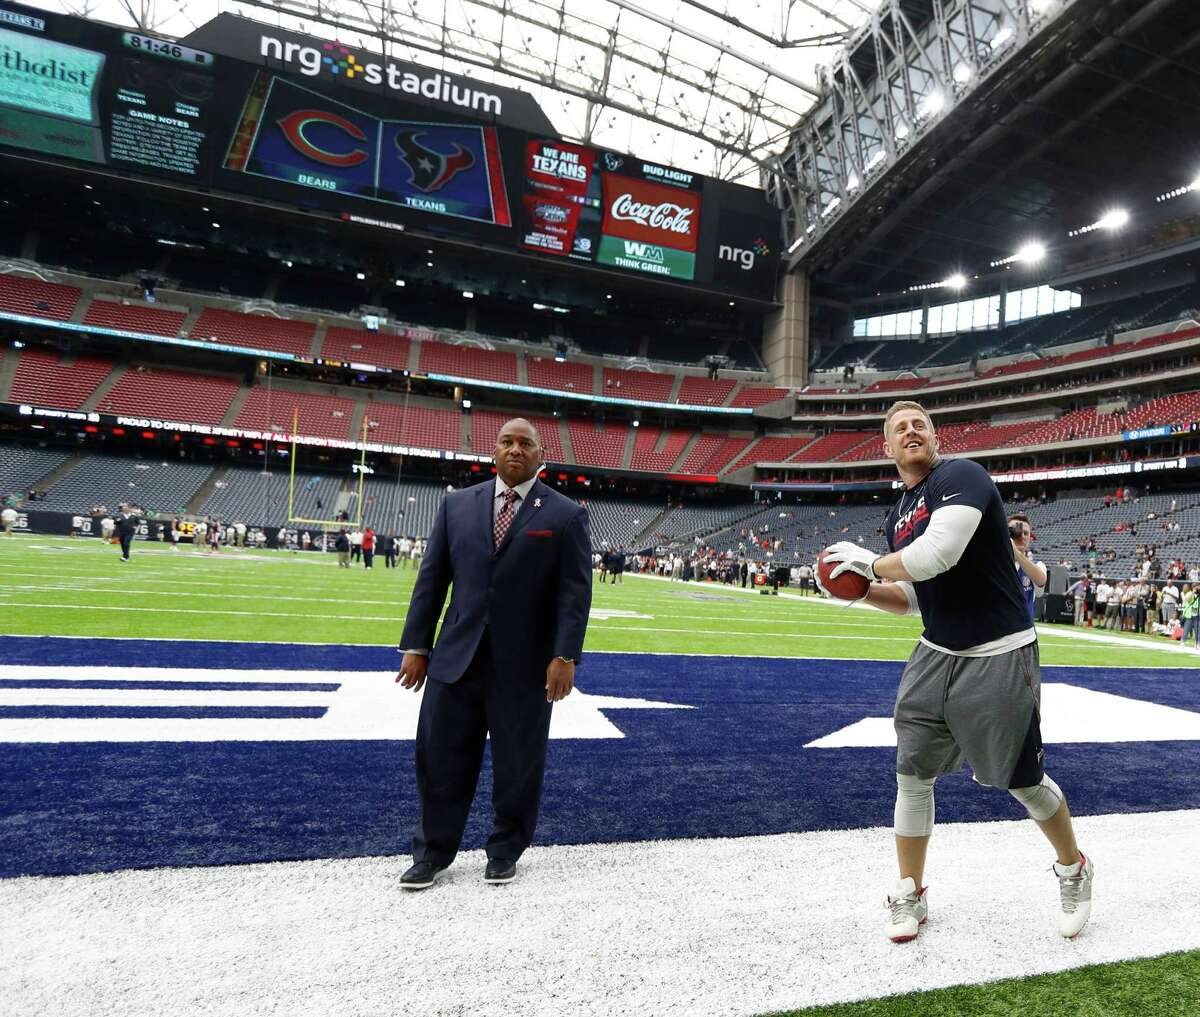 Houston Texans defensive end J.J. Watt (99) tosses a football into the stands as he played catch with fans during warmups before the start of an NFL game at NRG Stadium,Sunday, Sept. 11, 2016 in Houston.